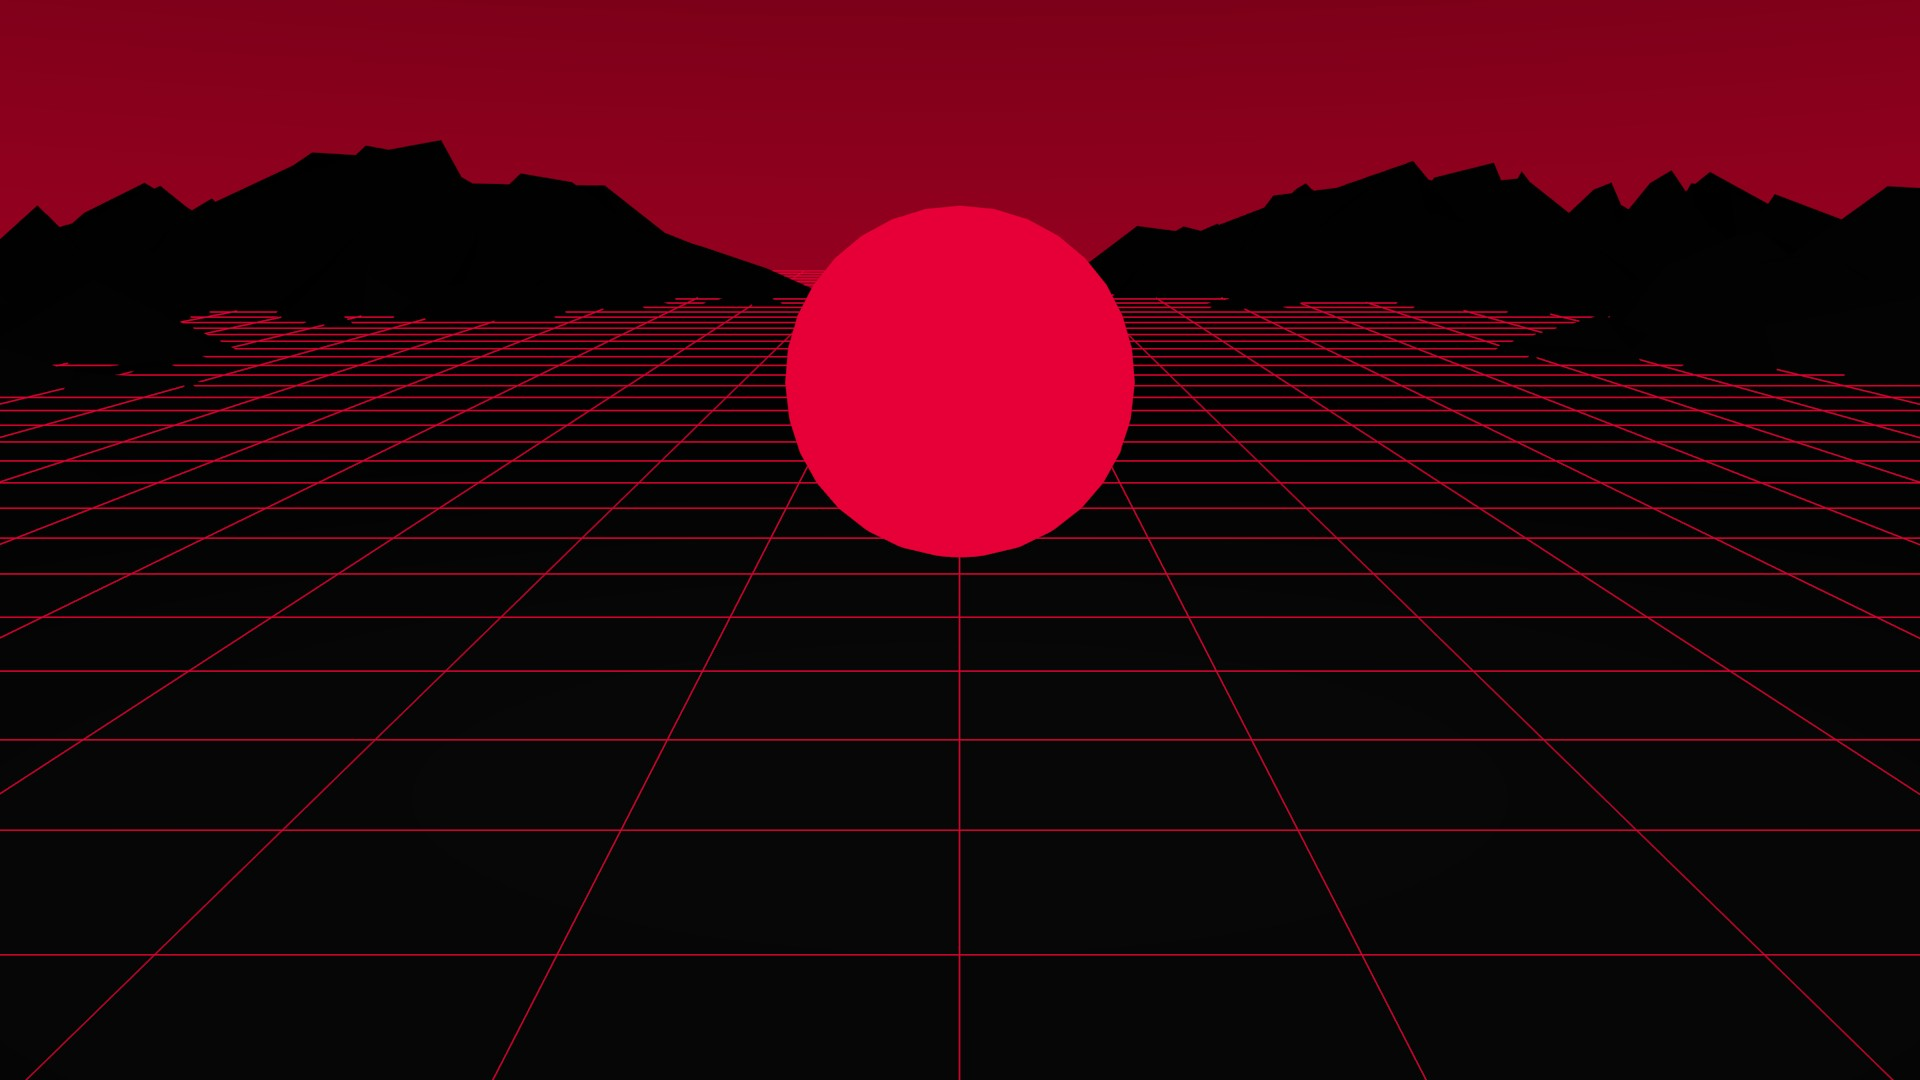 Red Aesthetic Wallpaper Posted By Zoey Mercado